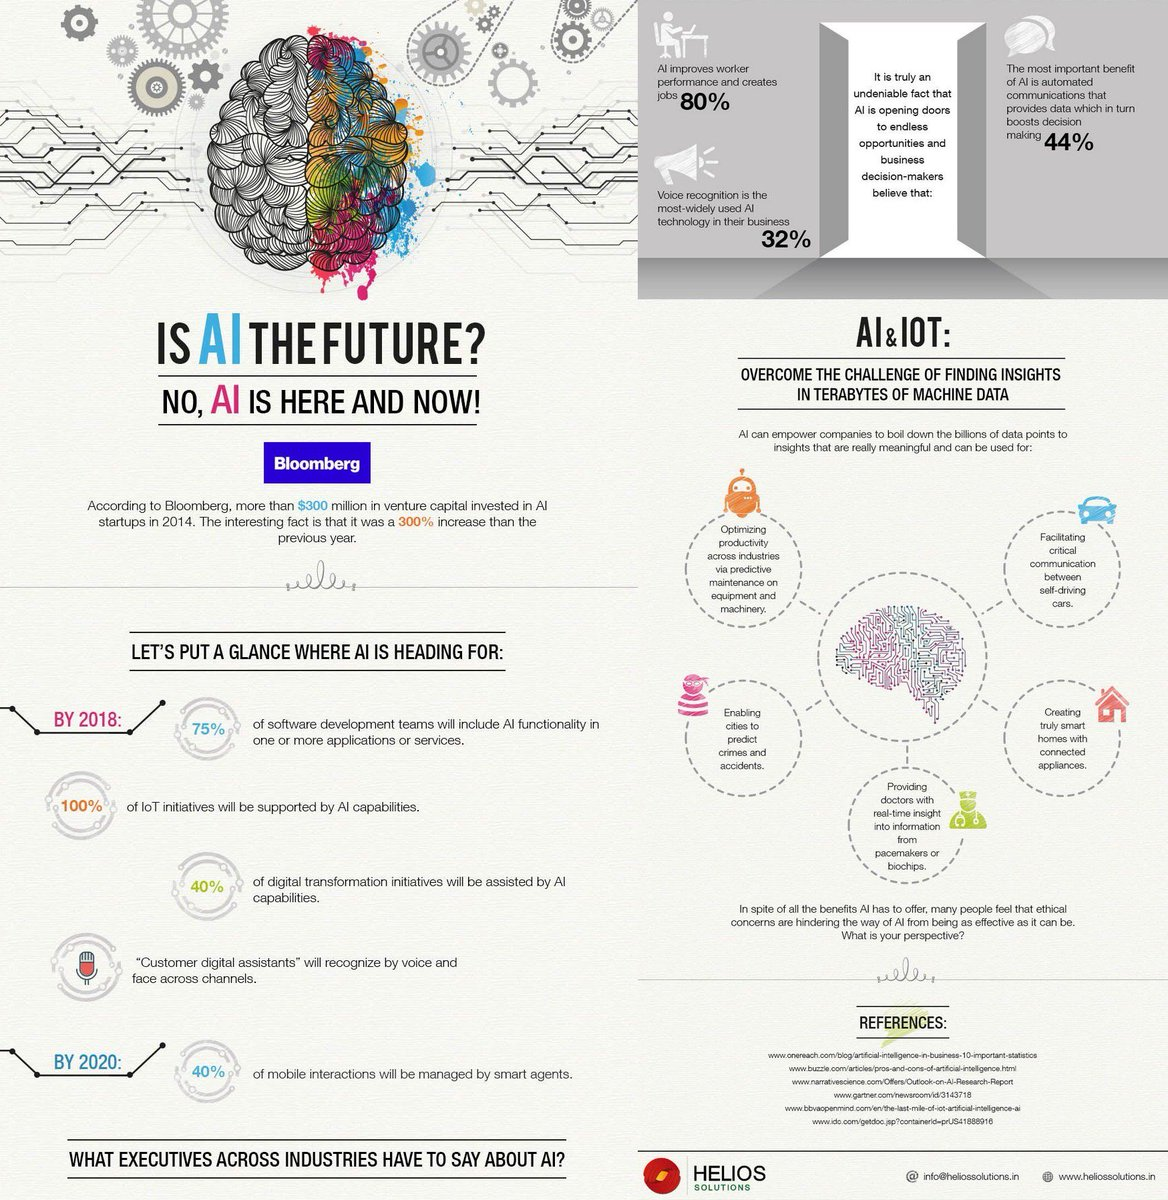 Impact of #AI on the #Business World   #ML #DL #BigData #IoT #NLP #HealthTech #MachineLearning #Cloud #Defstar5 #Mpgvip #Dataviz #Disruption<br>http://pic.twitter.com/QxbL0O2caQ